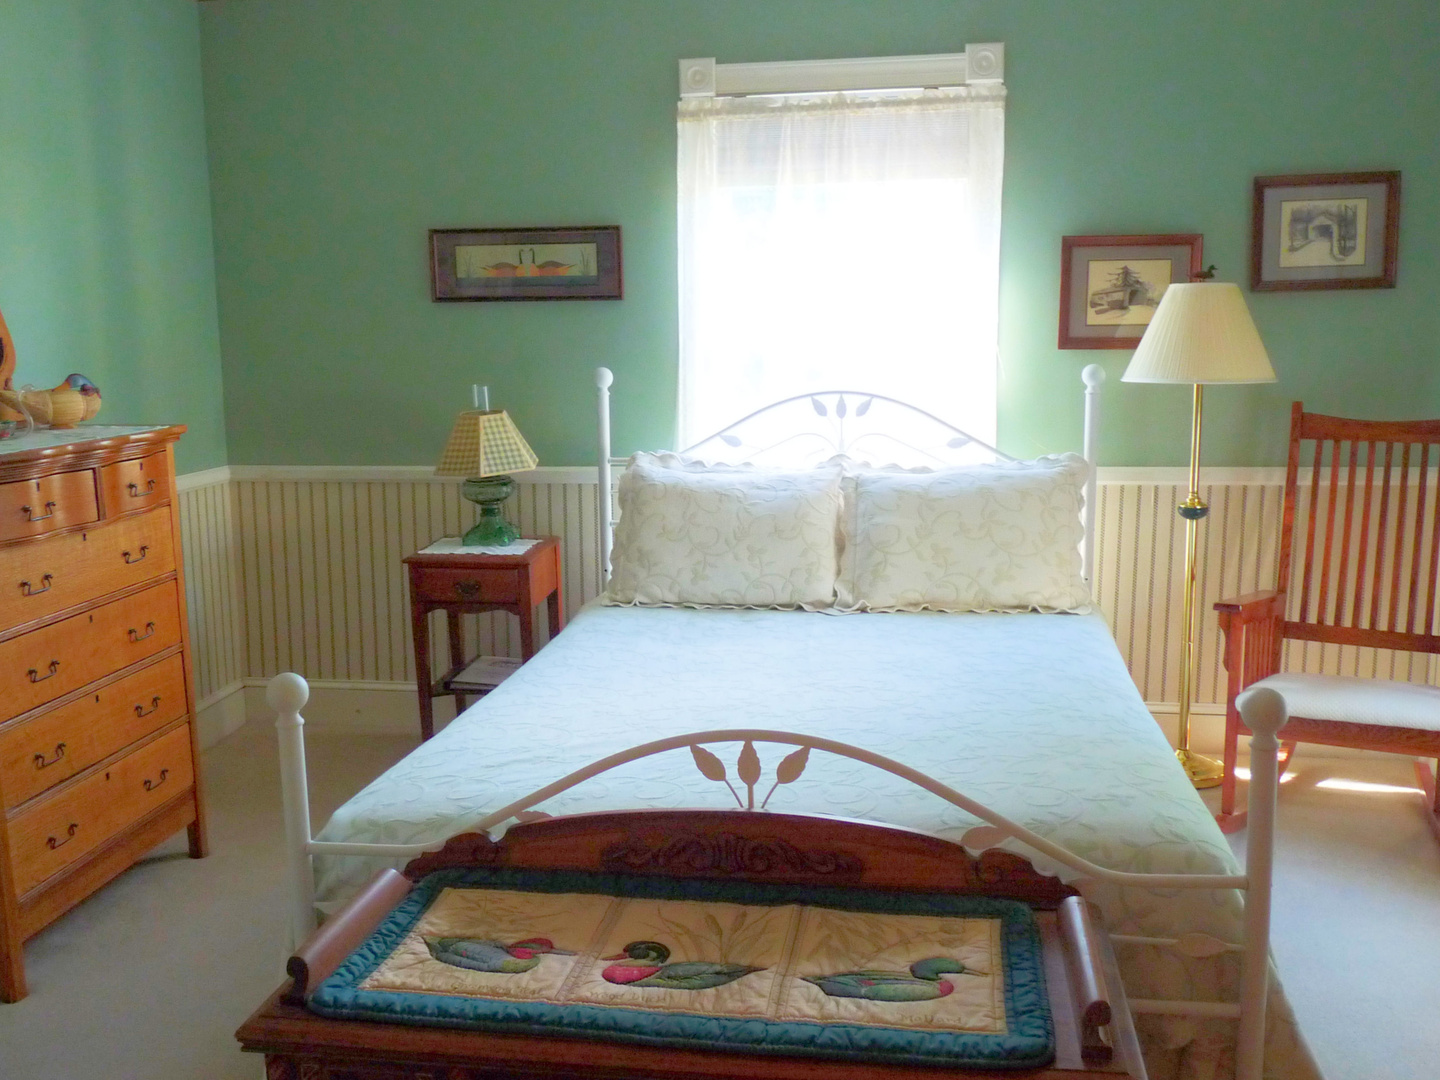 A bedroom with a bed and a chair in a room at J. D. Thompson Inn Bed and Breakfast.